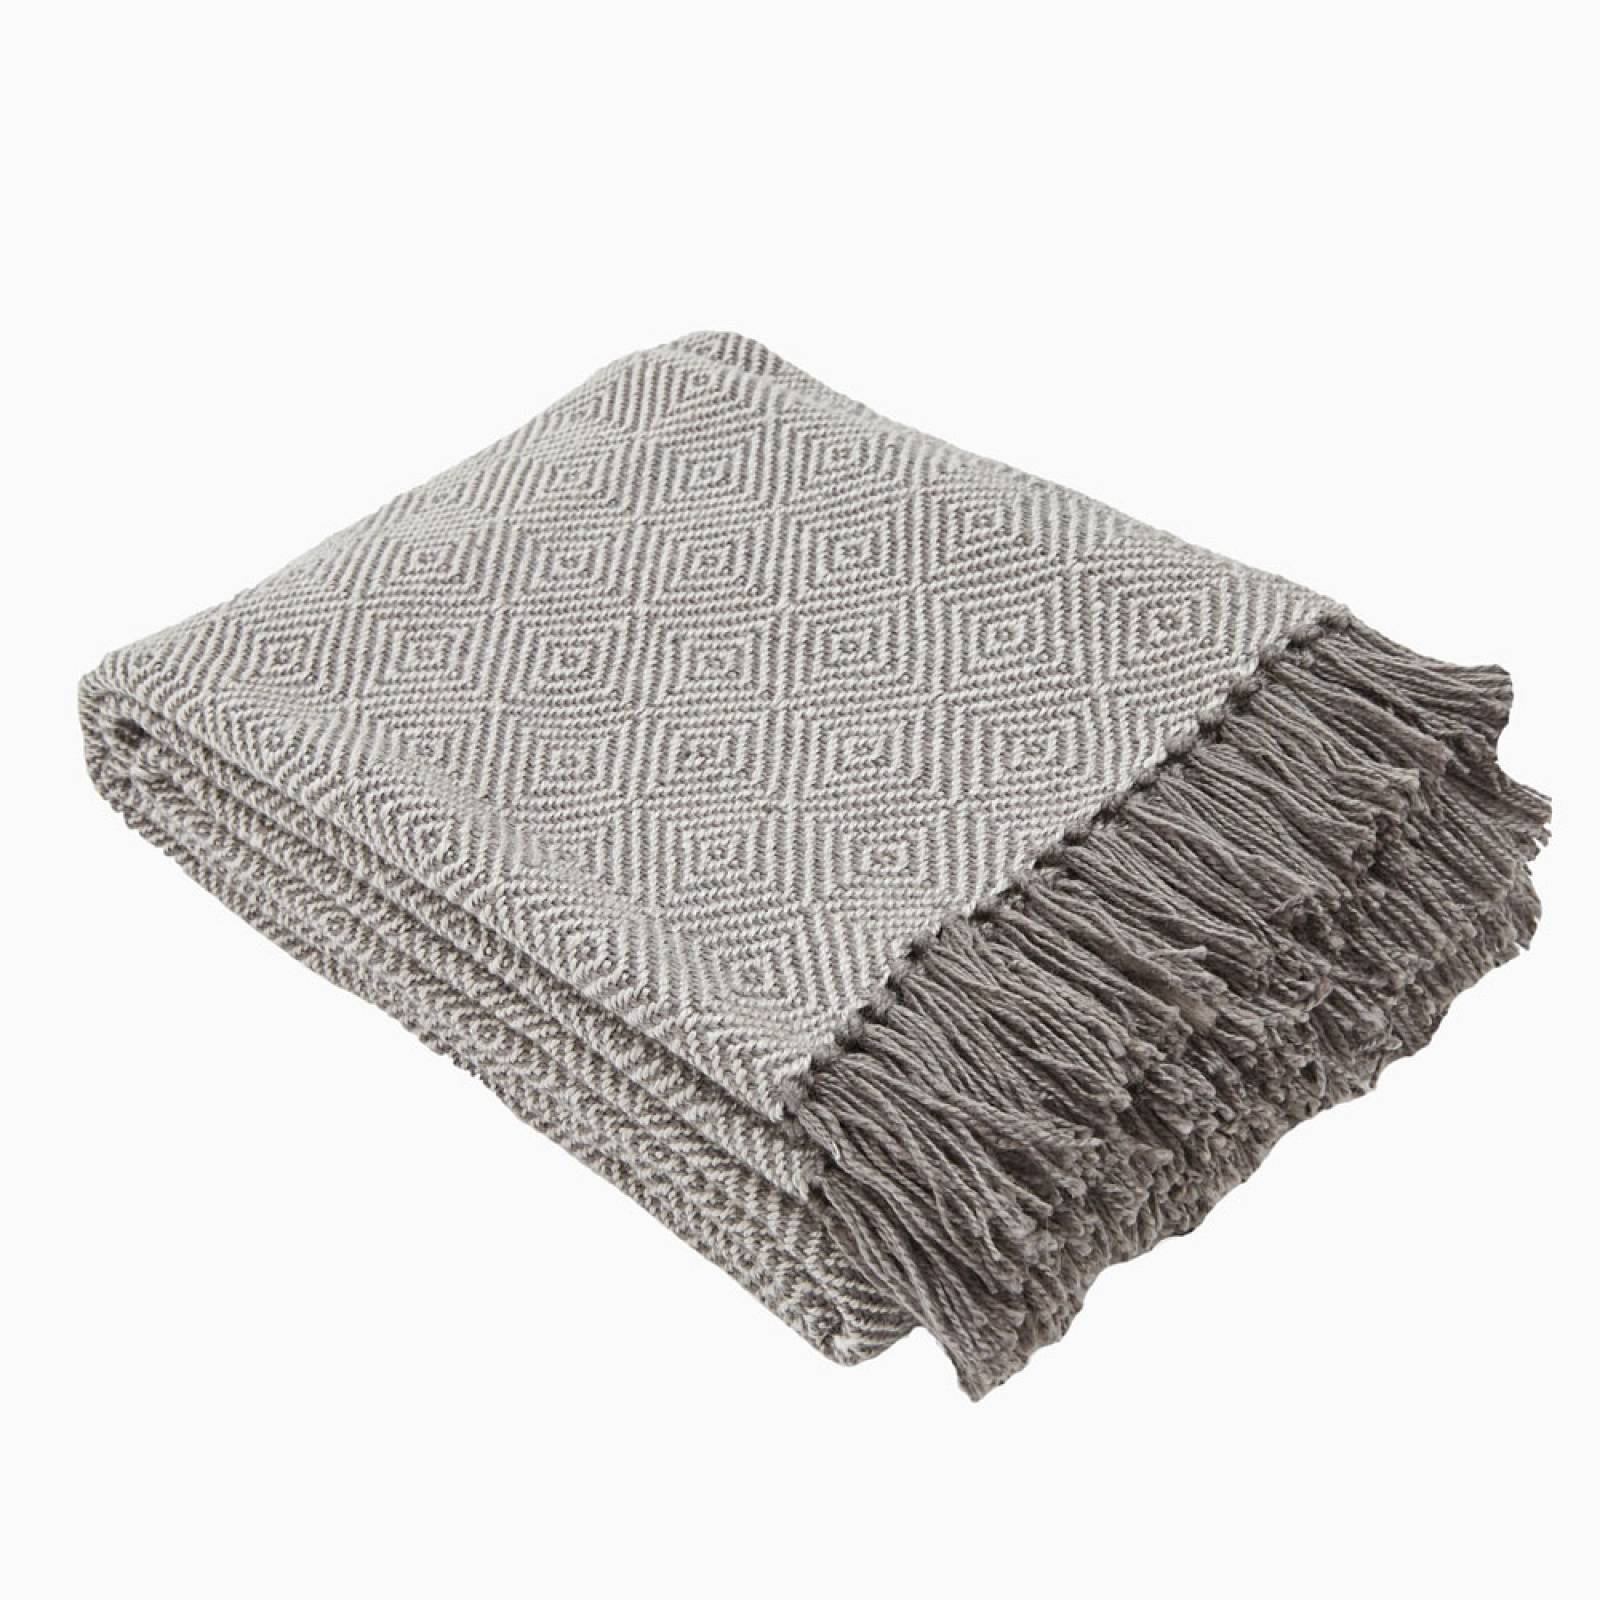 Tabby Diamond Blanket Made From Recycled Bottles